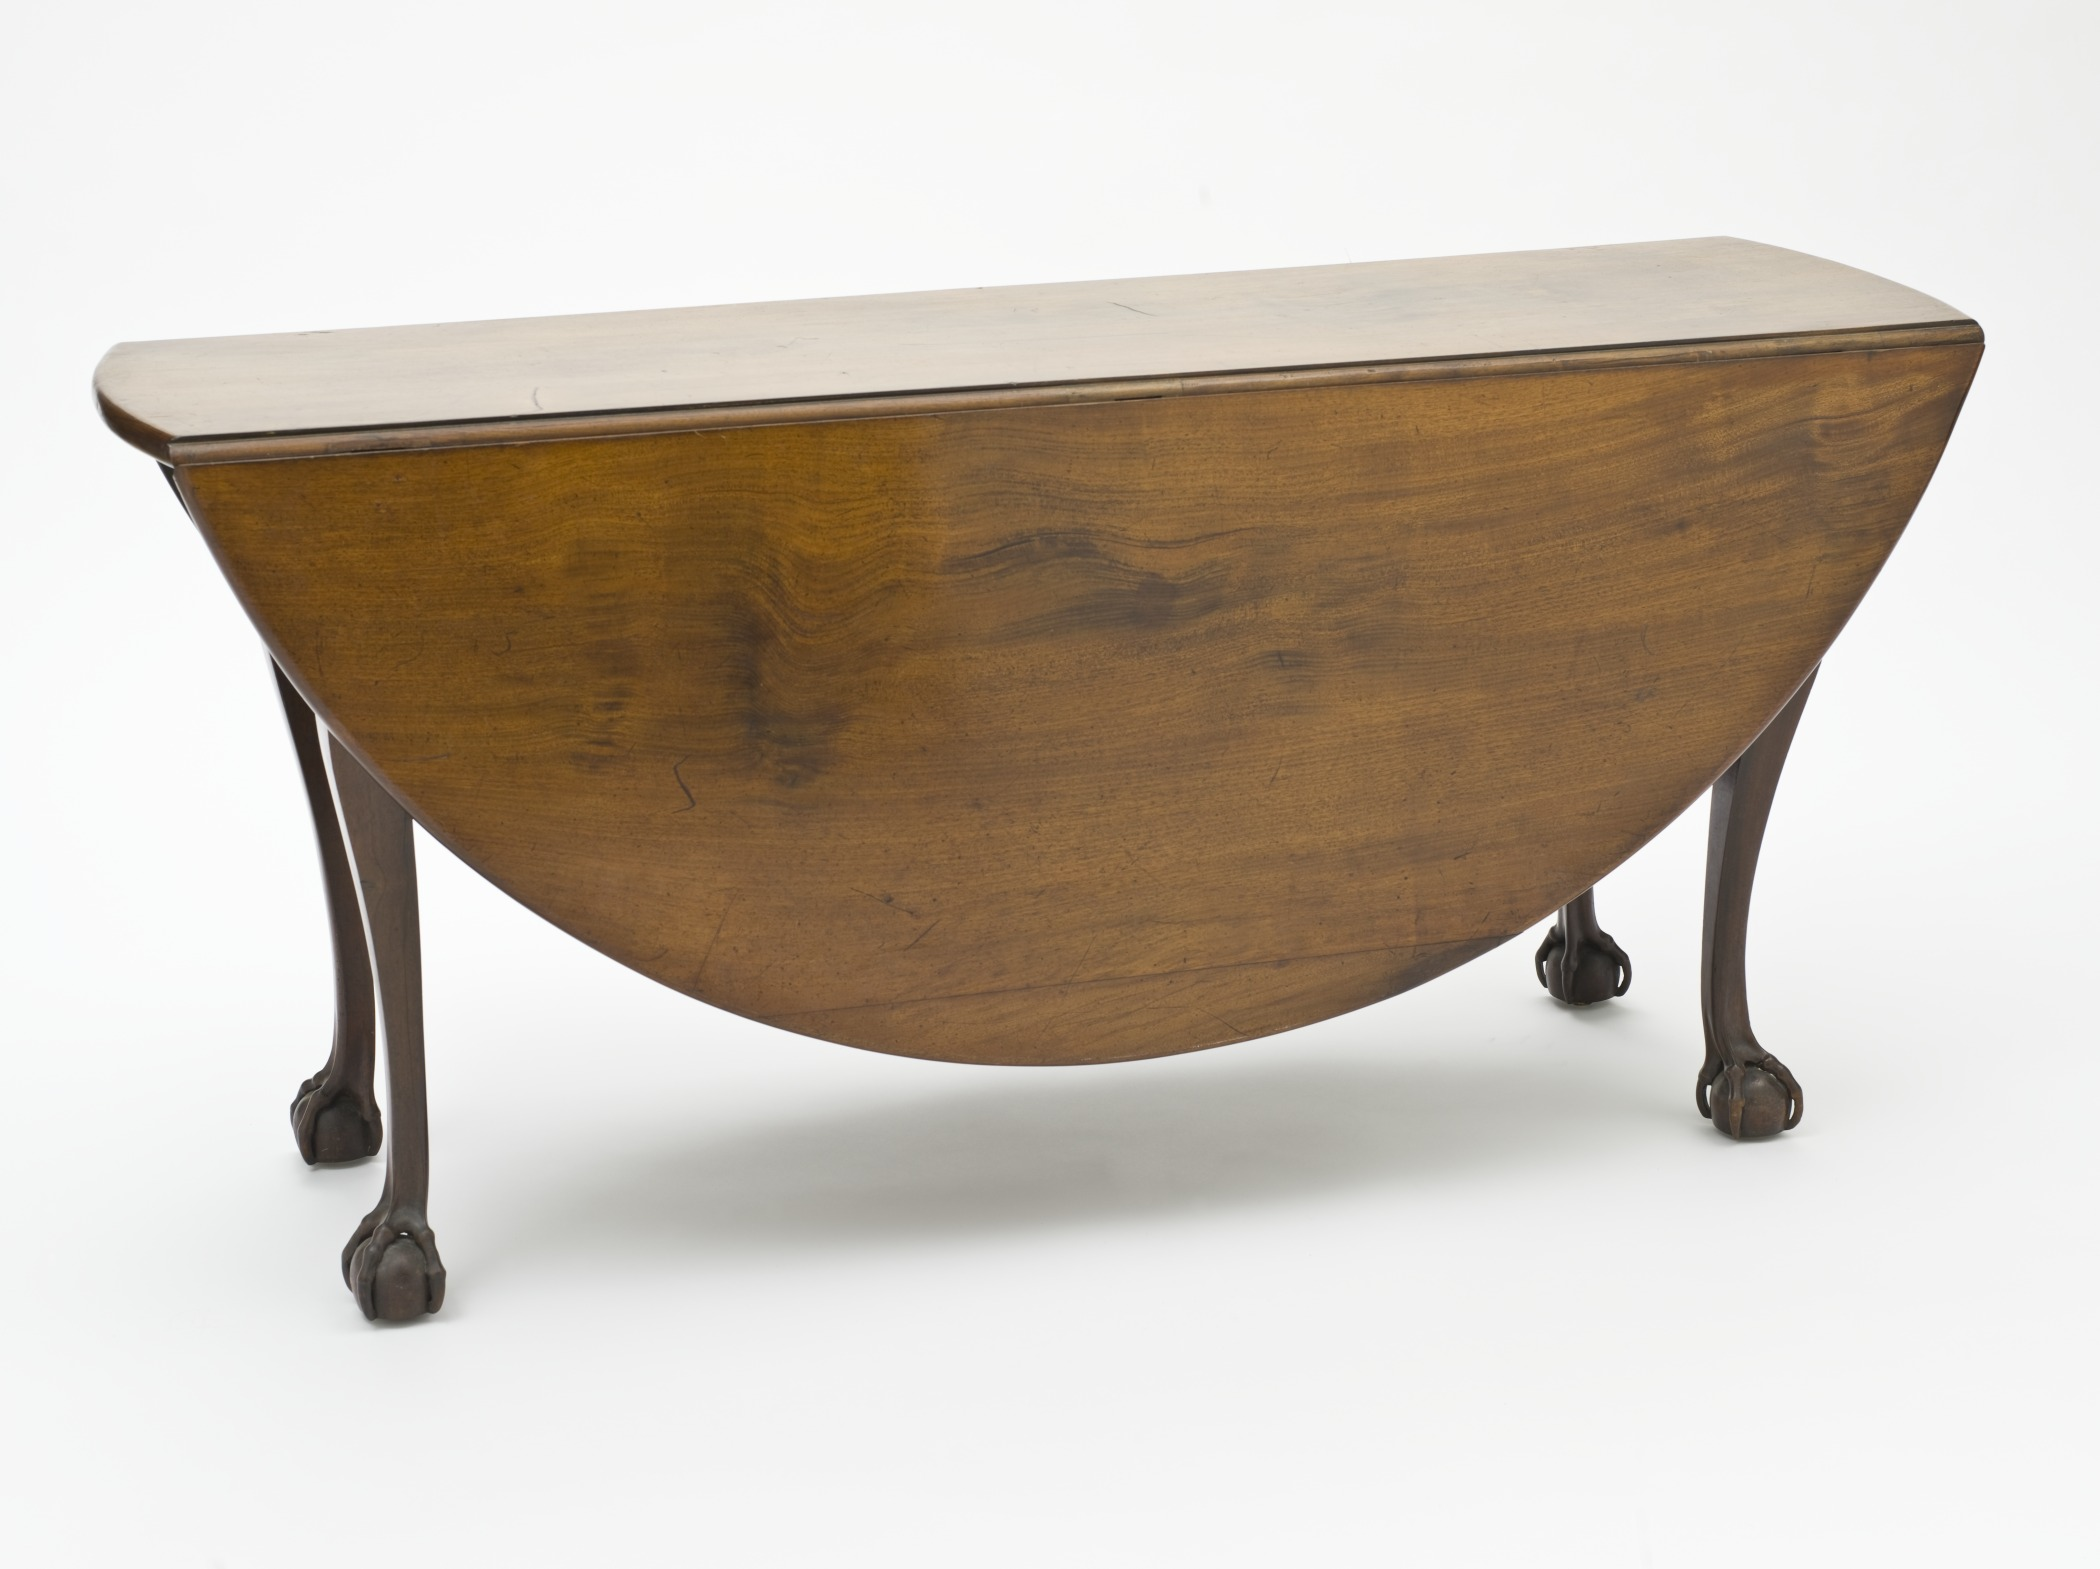 FileOval Drop Leaf Dining Table With Ball and Claw Feet